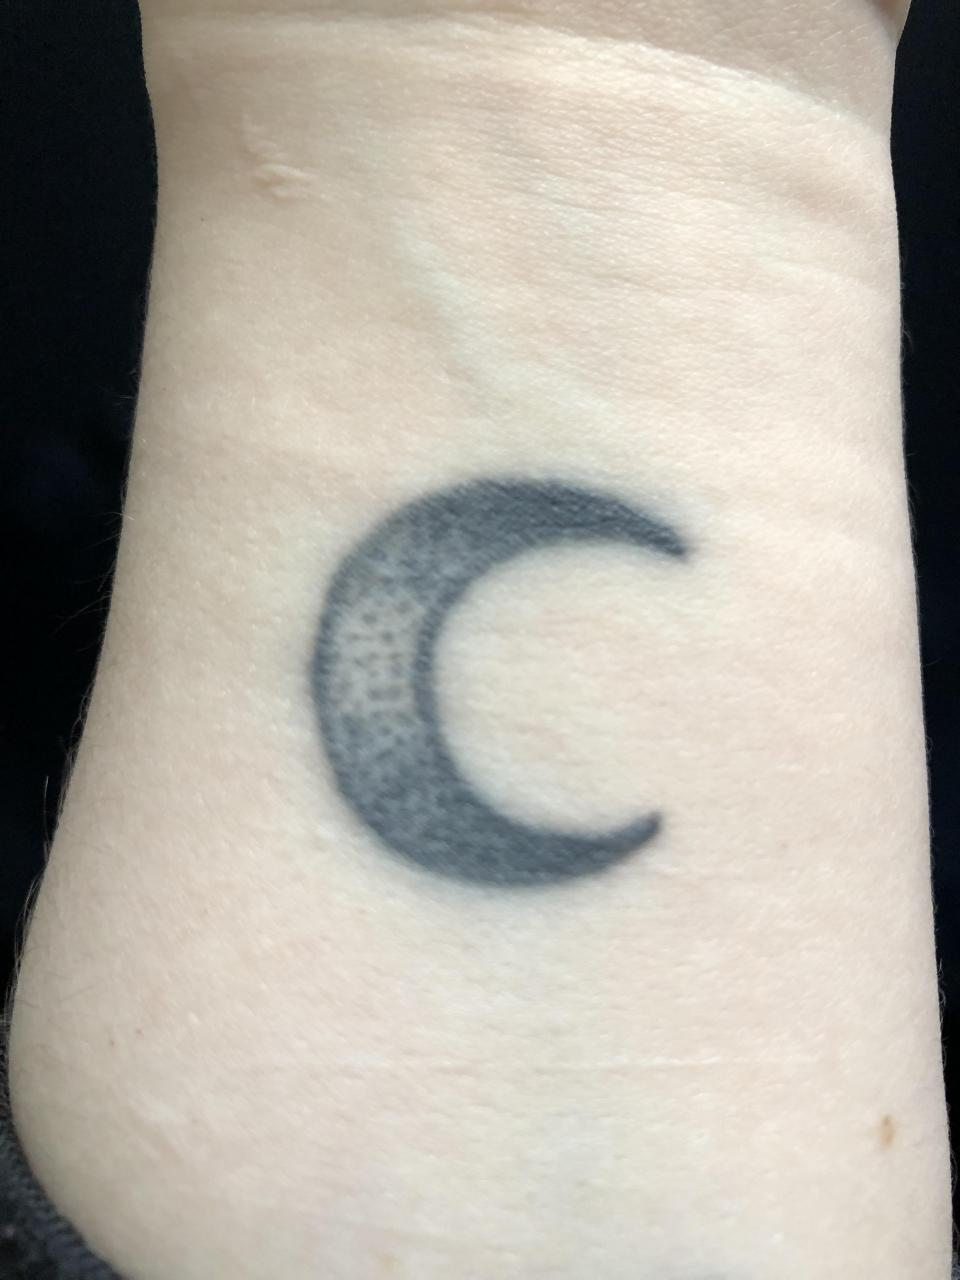 Hello everyone, any ideas on how I can cover up this monstrosity? It's in my wrist